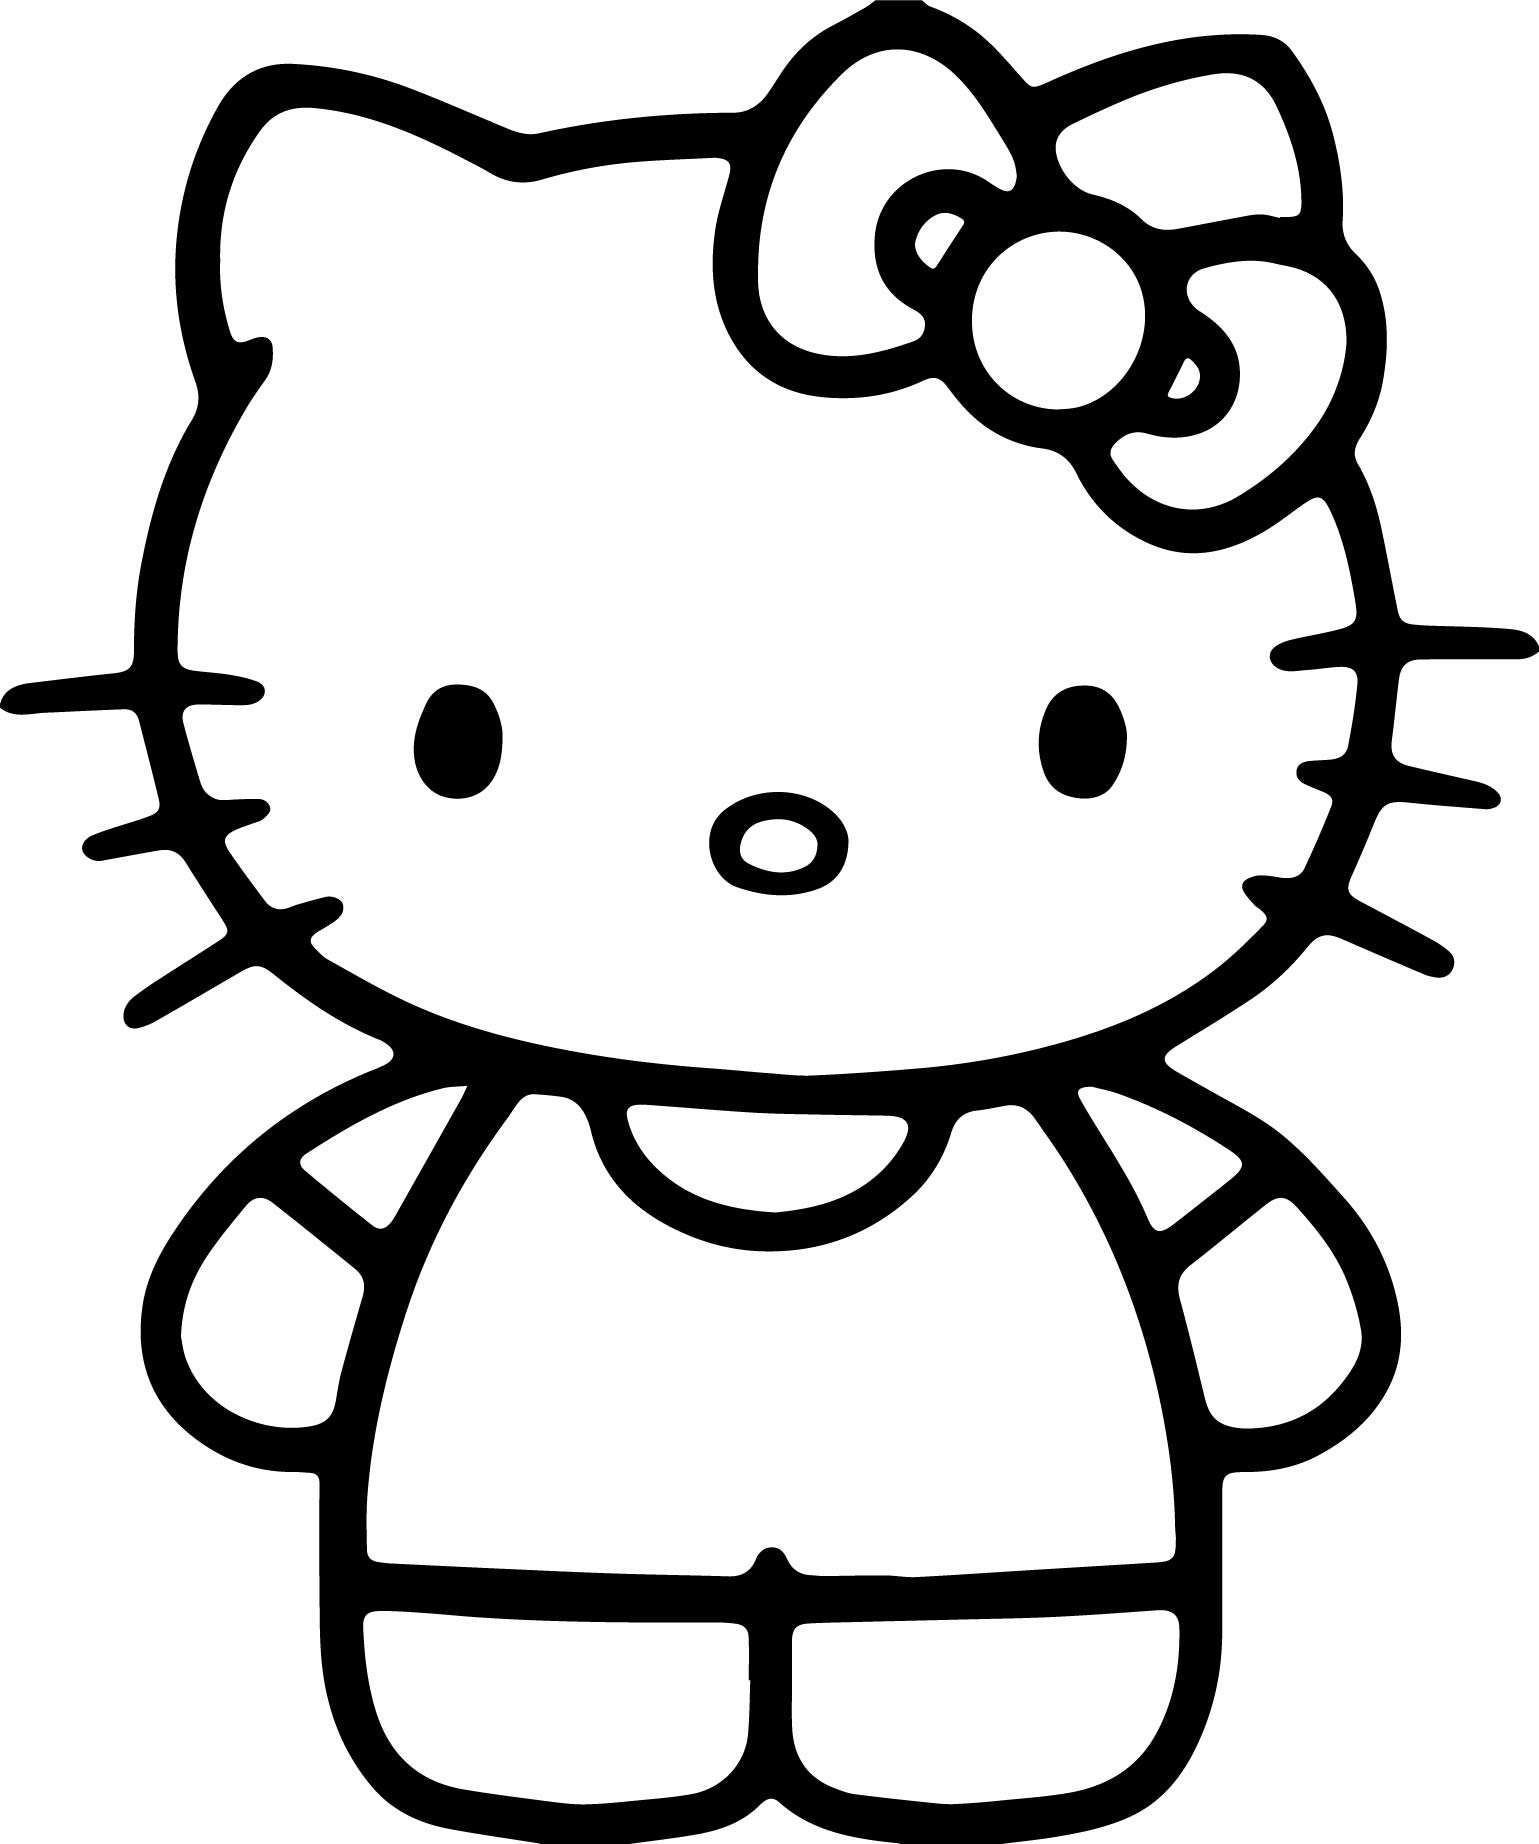 simple hello kitty coloring page - Coloring Pages Simple